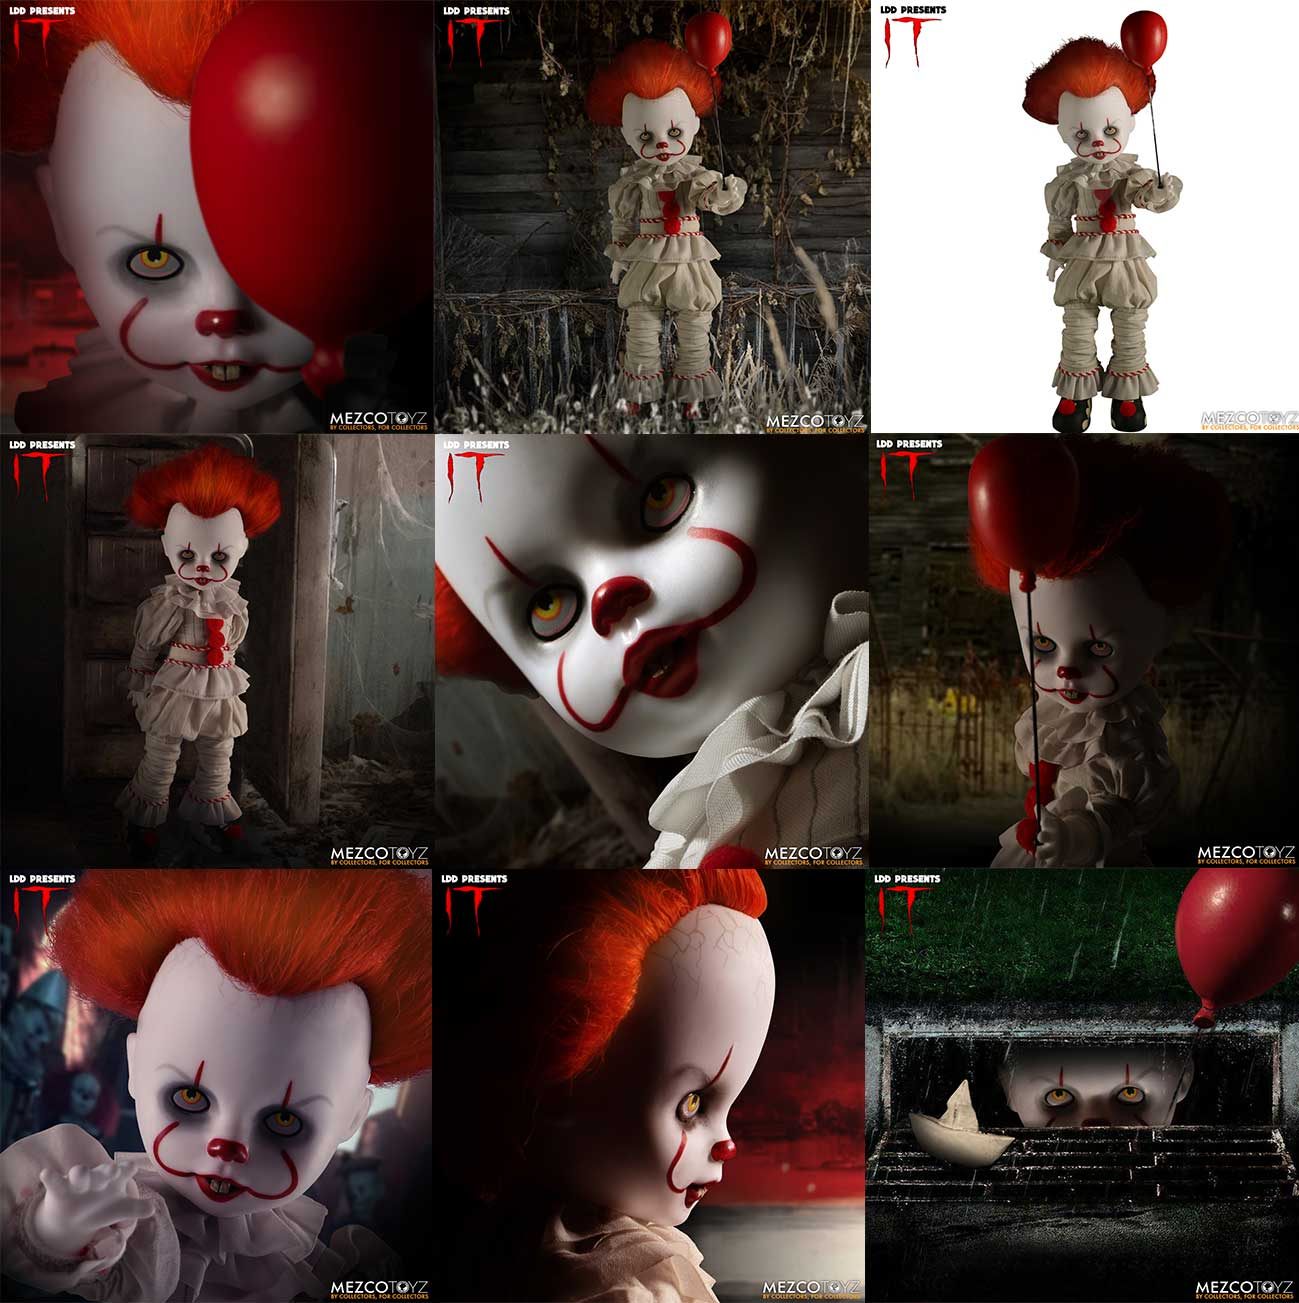 Living Dead Dolls: IT 2017 - Pennywise